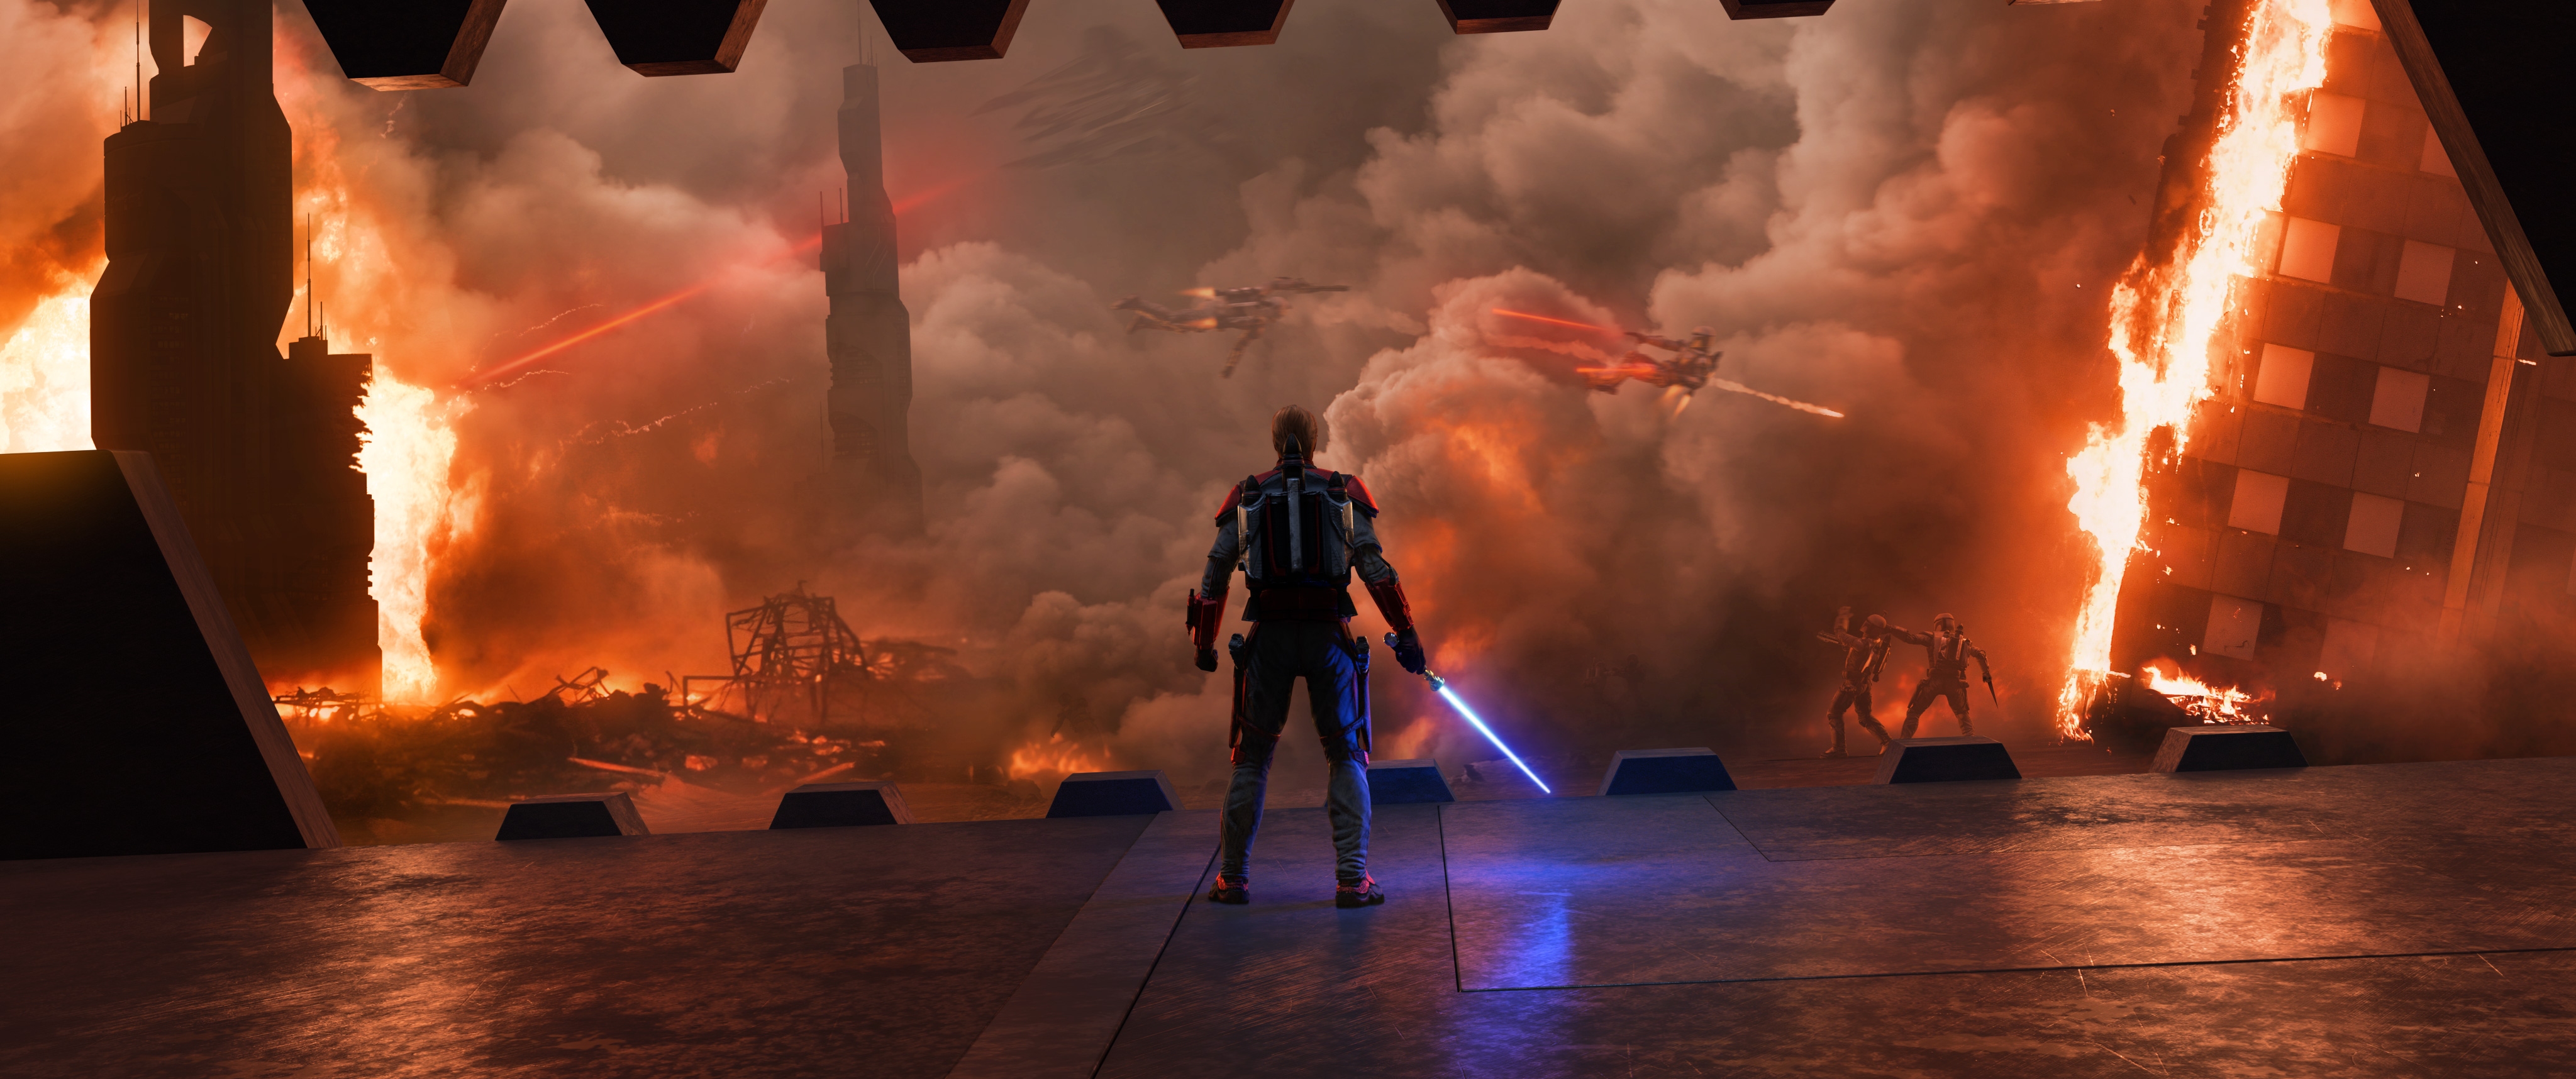 1440x3120 Star Wars Siege Of Mandalore 1440x3120 Resolution Wallpaper Hd Artist 4k Wallpapers Images Photos And Background